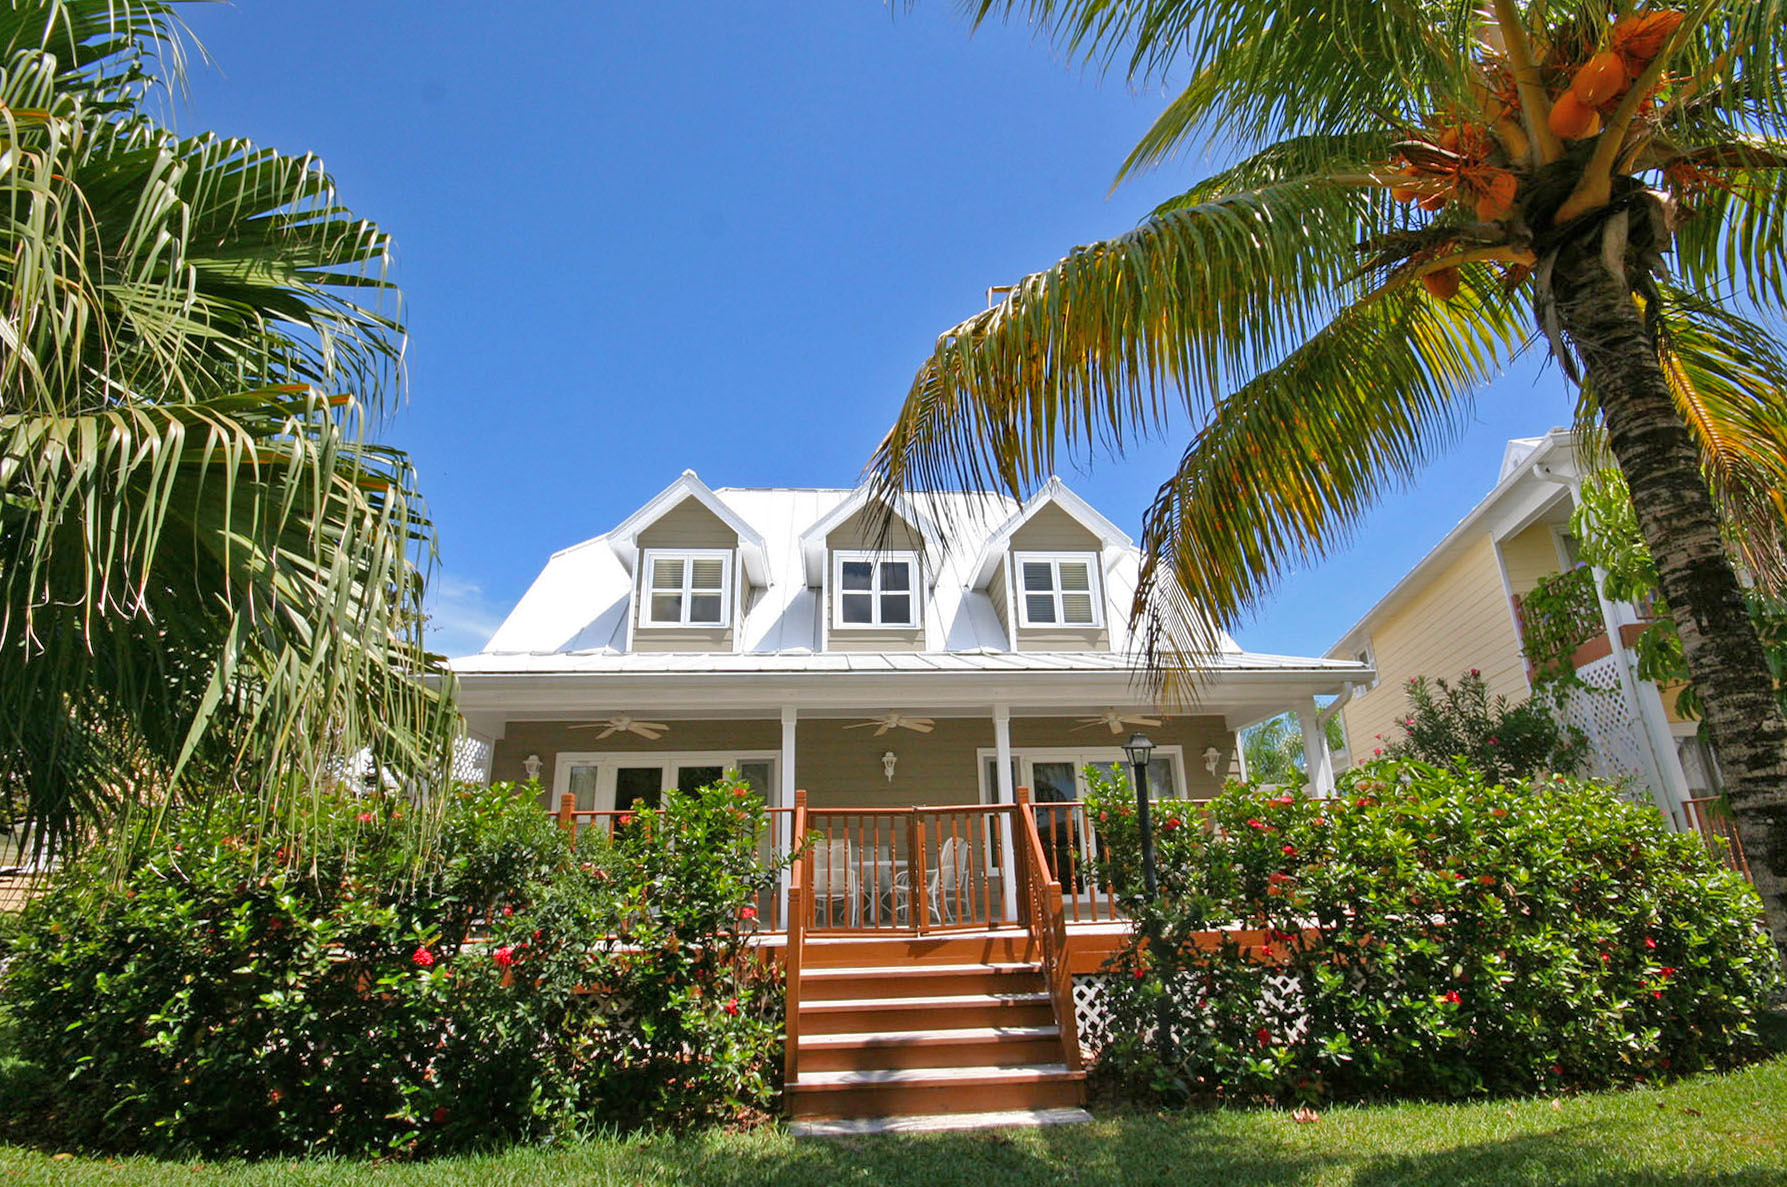 Single Family Home for Rent at Island Home in Shoreline, Fortune Beach, Lucaya Shoreline, Lucaya, Grand Bahama Bahamas